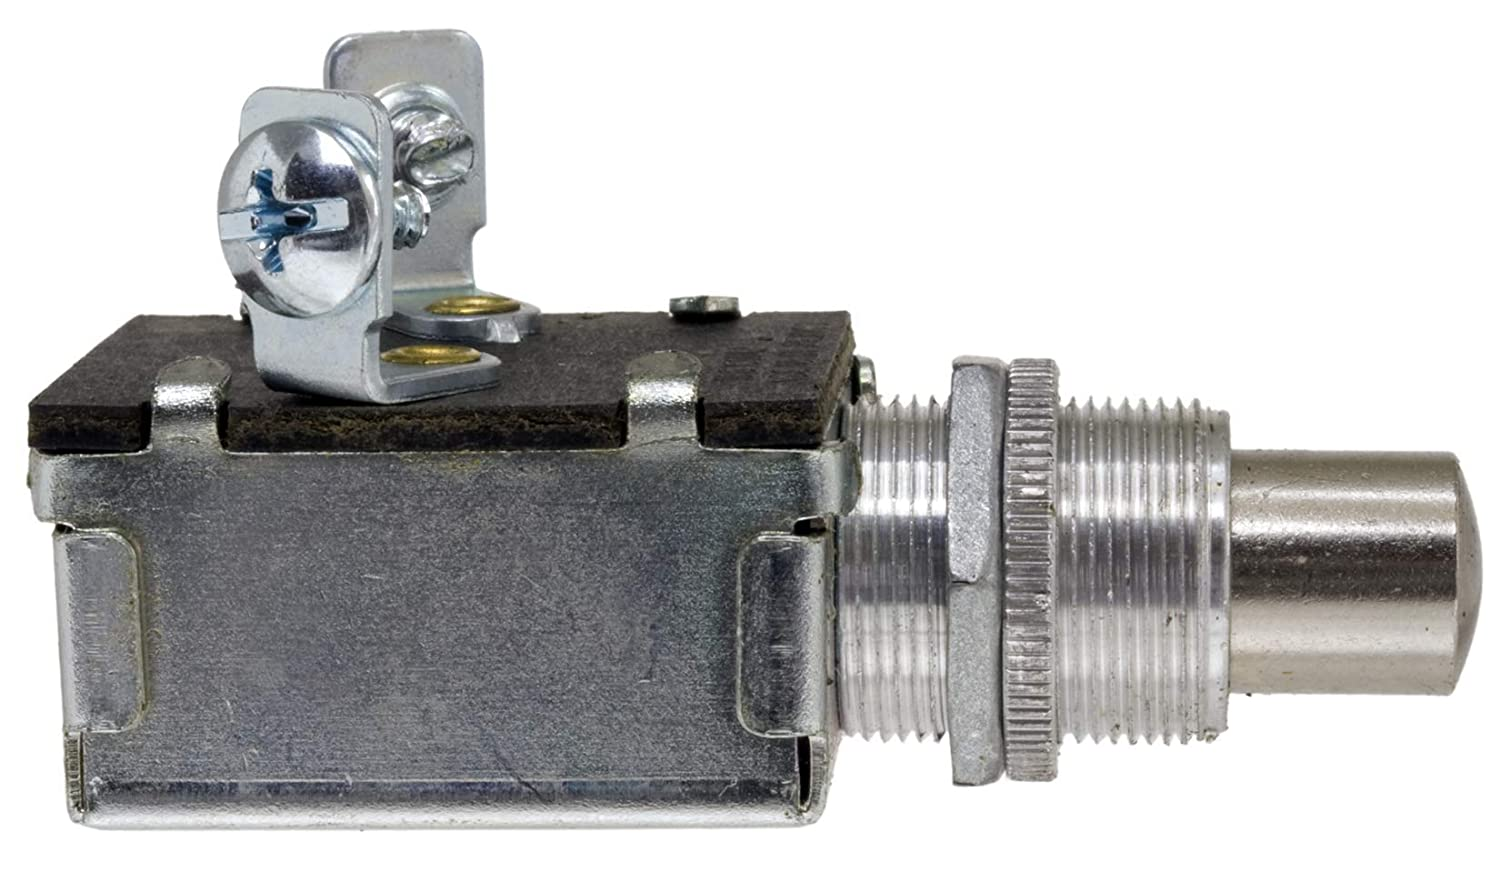 WVE by NTK 1S6529 Momentary Push Button Switch